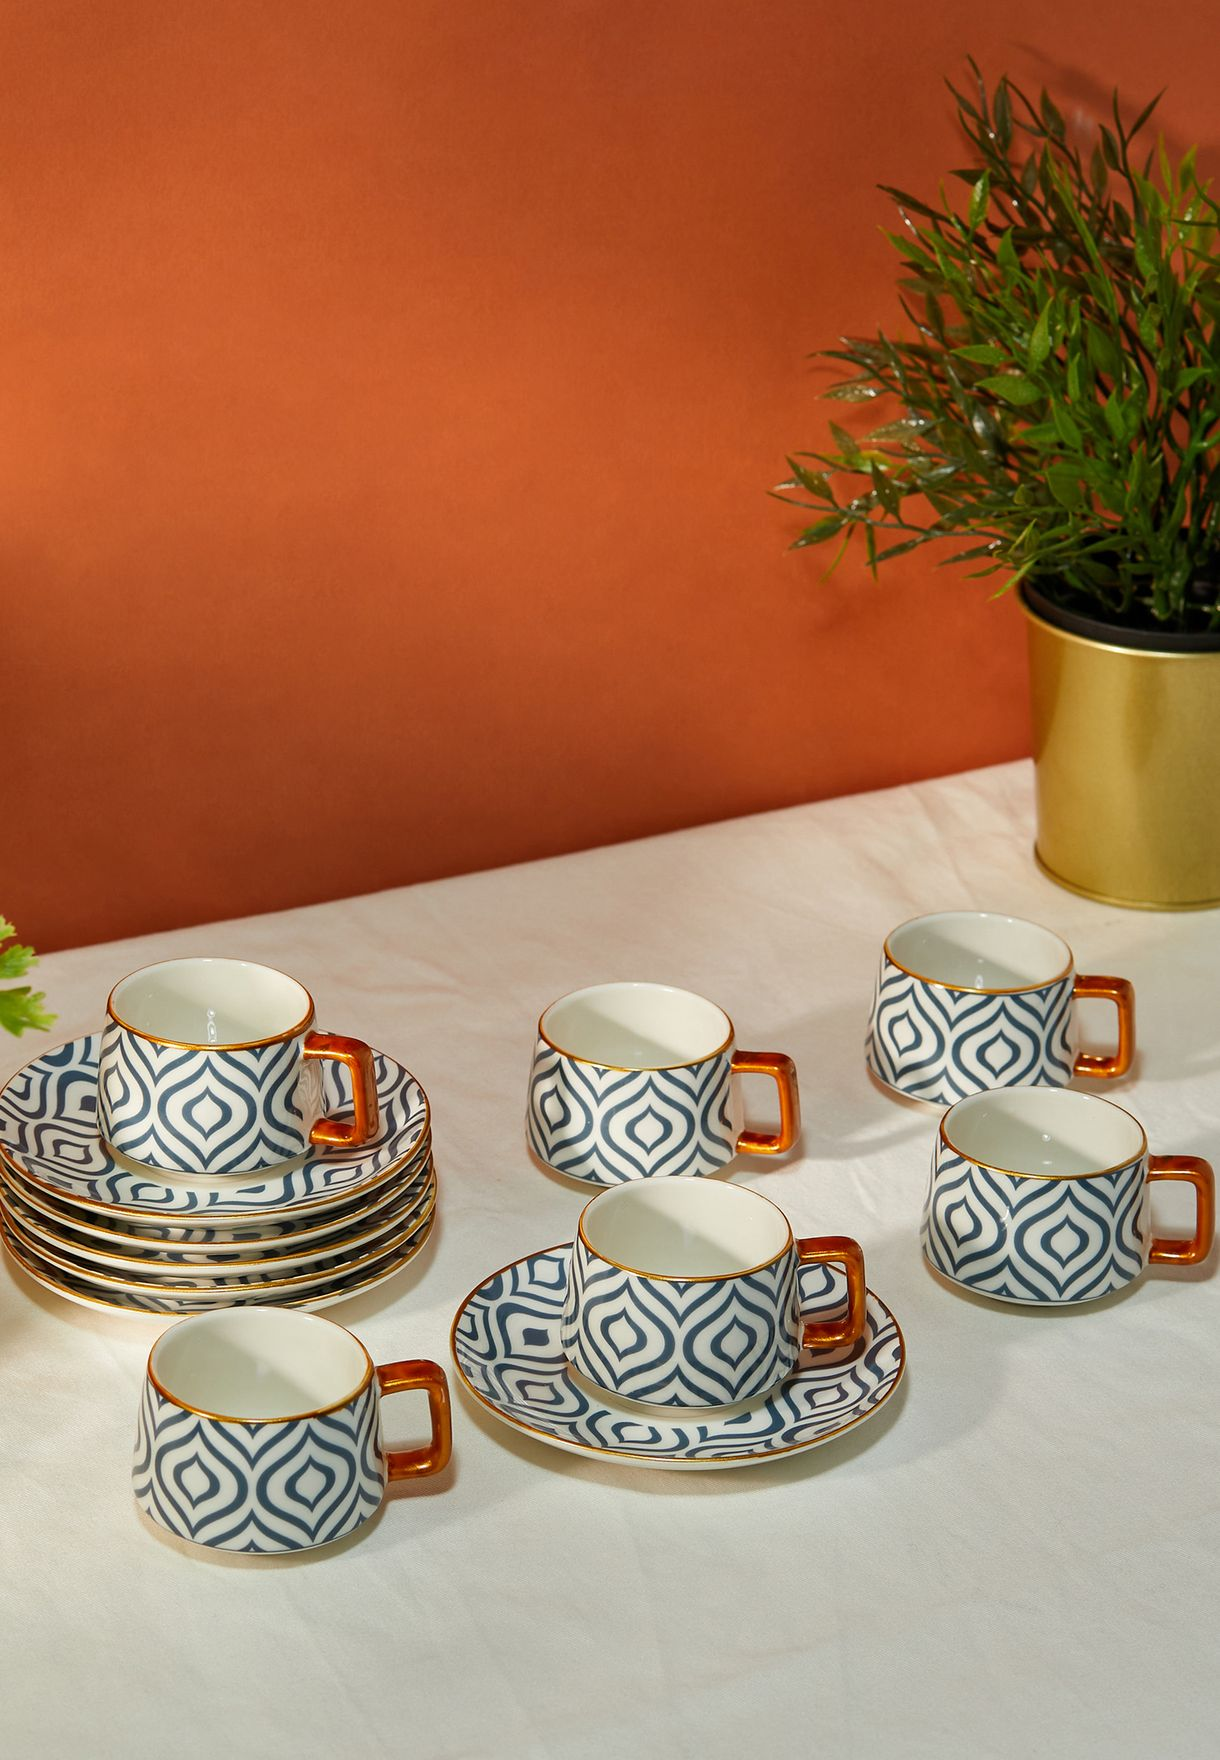 Set Of 6 Printed Cups and Saucers